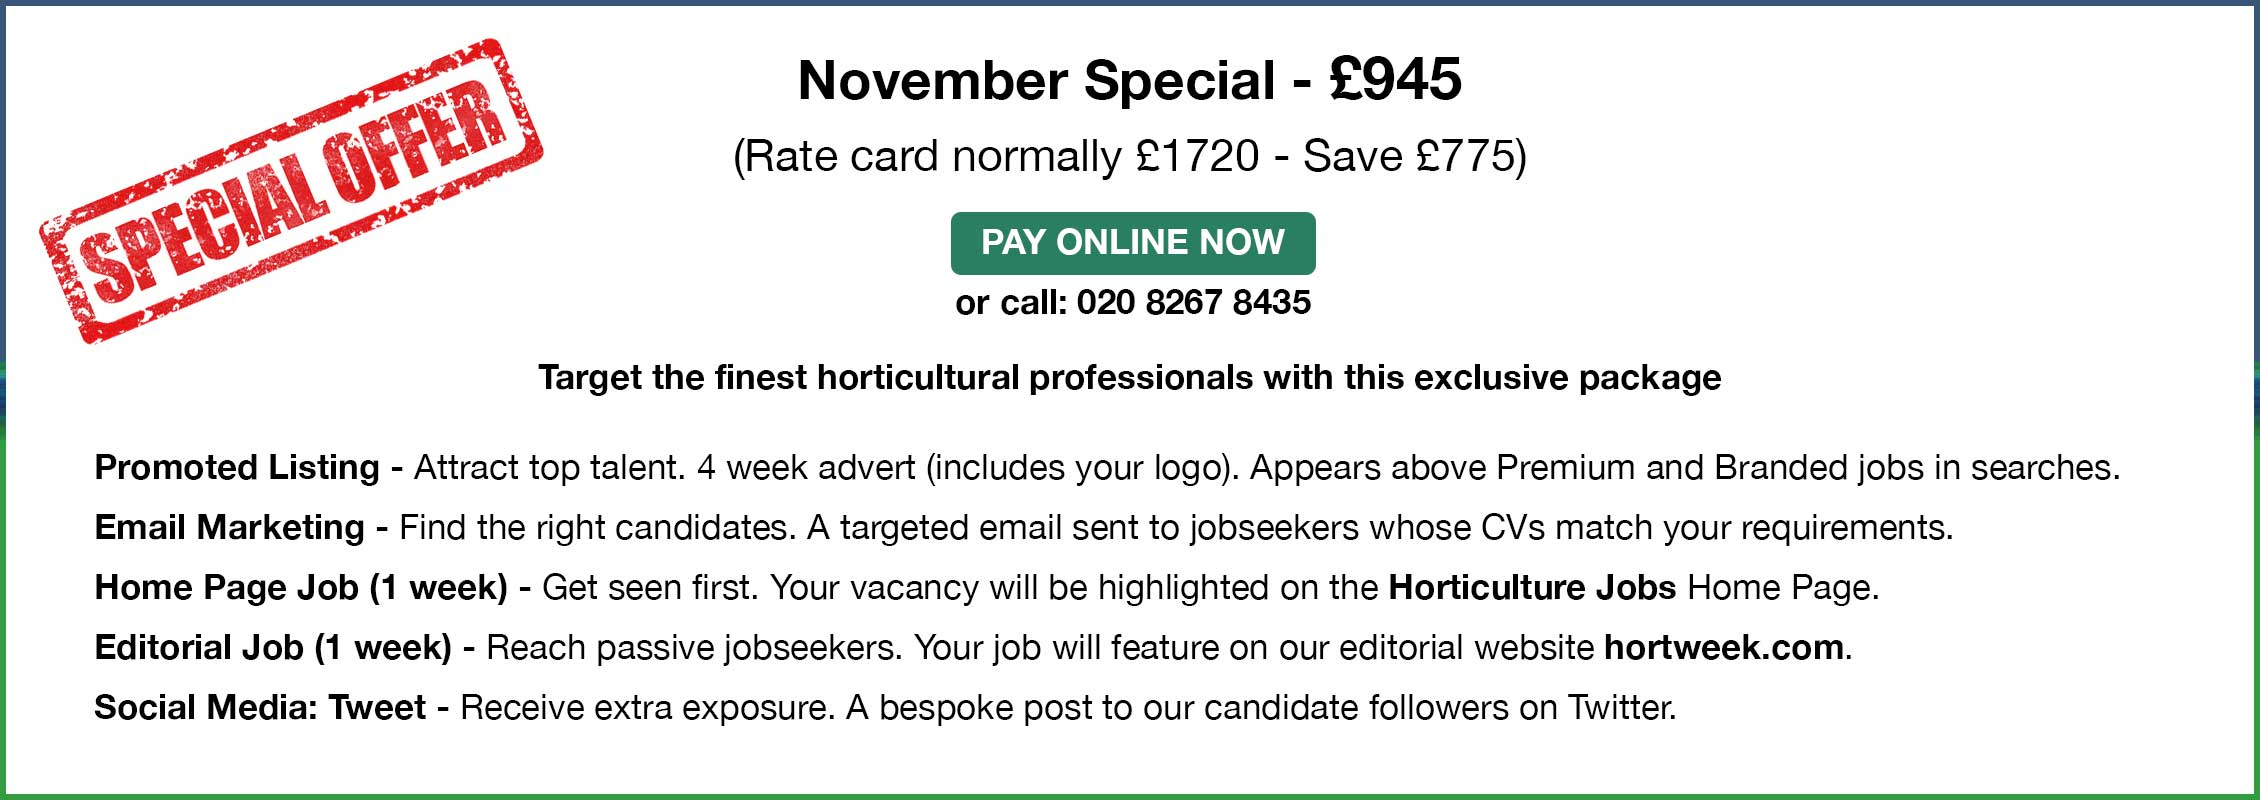 November Special - £945.